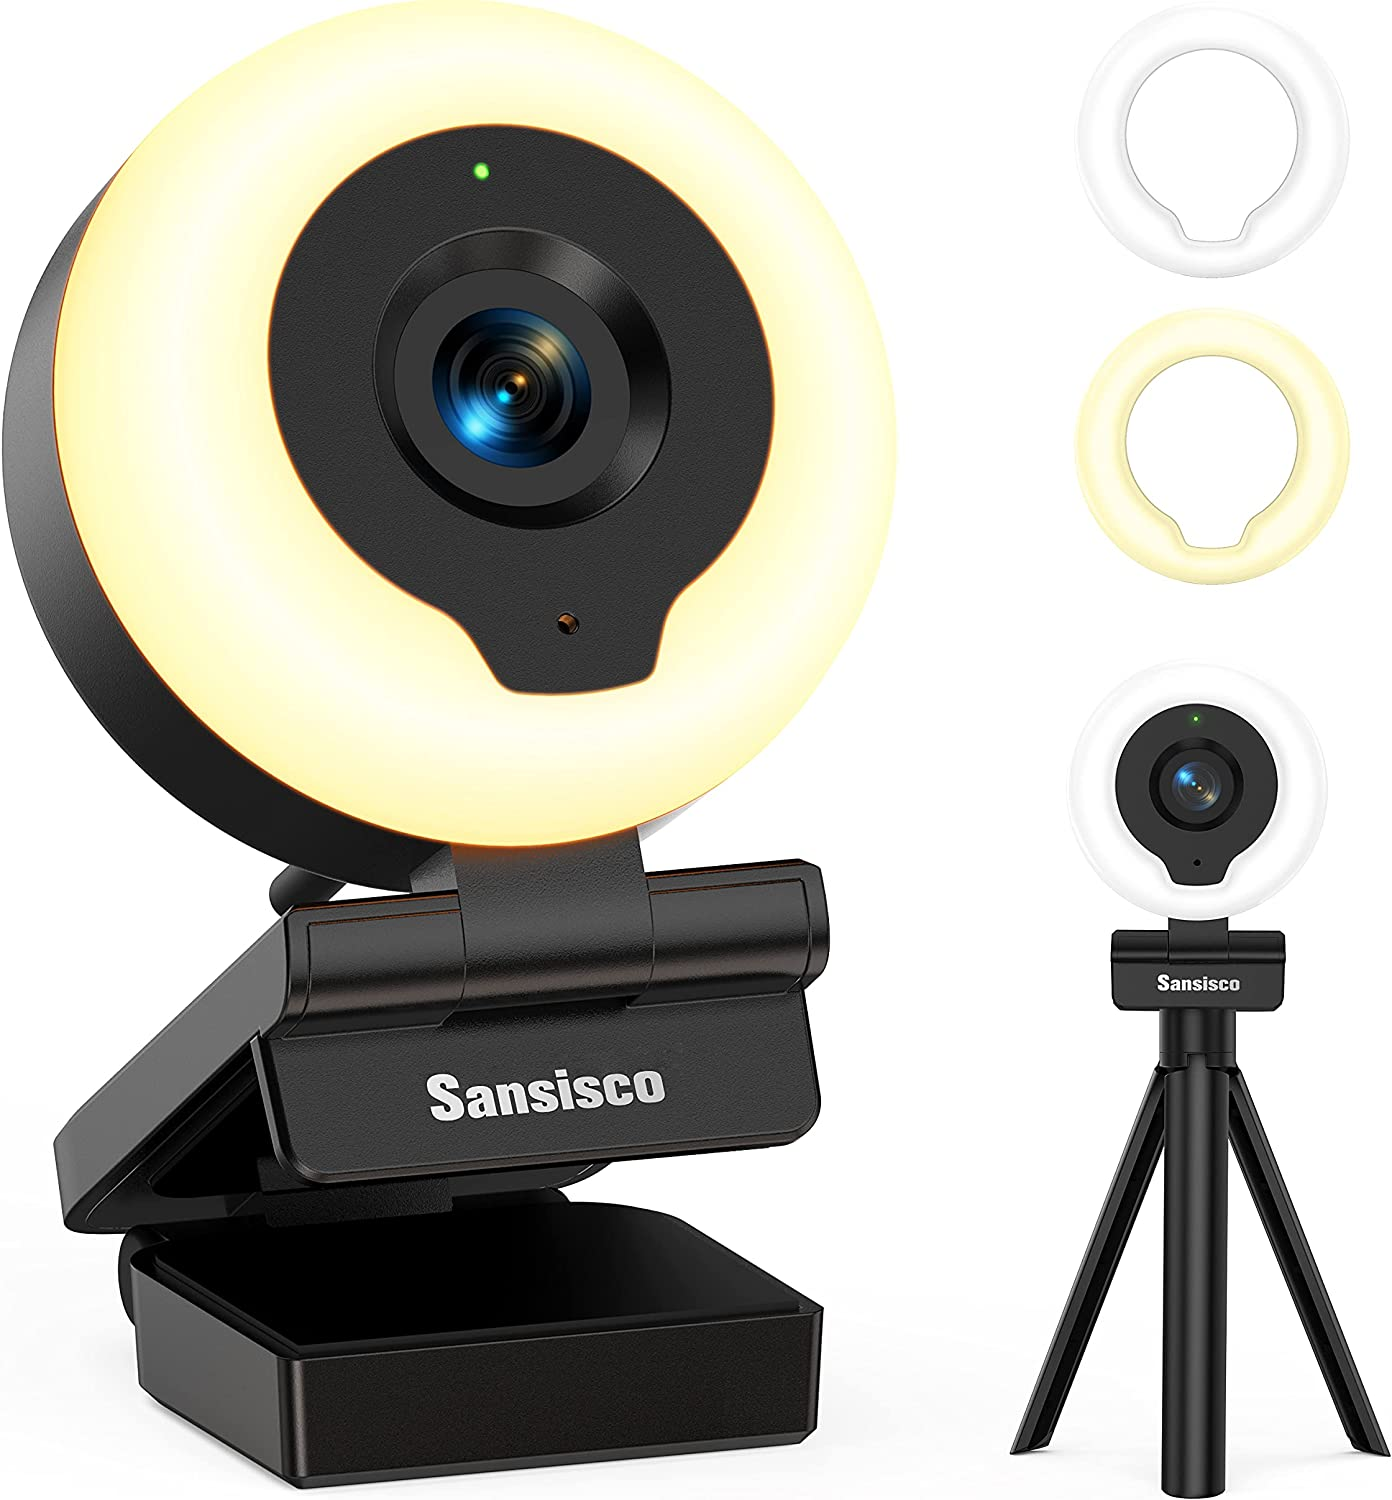 Webcam with Ring Light, Sansisco AutoFocus FHD 1080P Webcam with Microphone, 2 Colors and 3-Level Brightness, Plug and Play Computer Camera, Streaming Web Camera for Laptop MacBook PC for Zoom, Skype